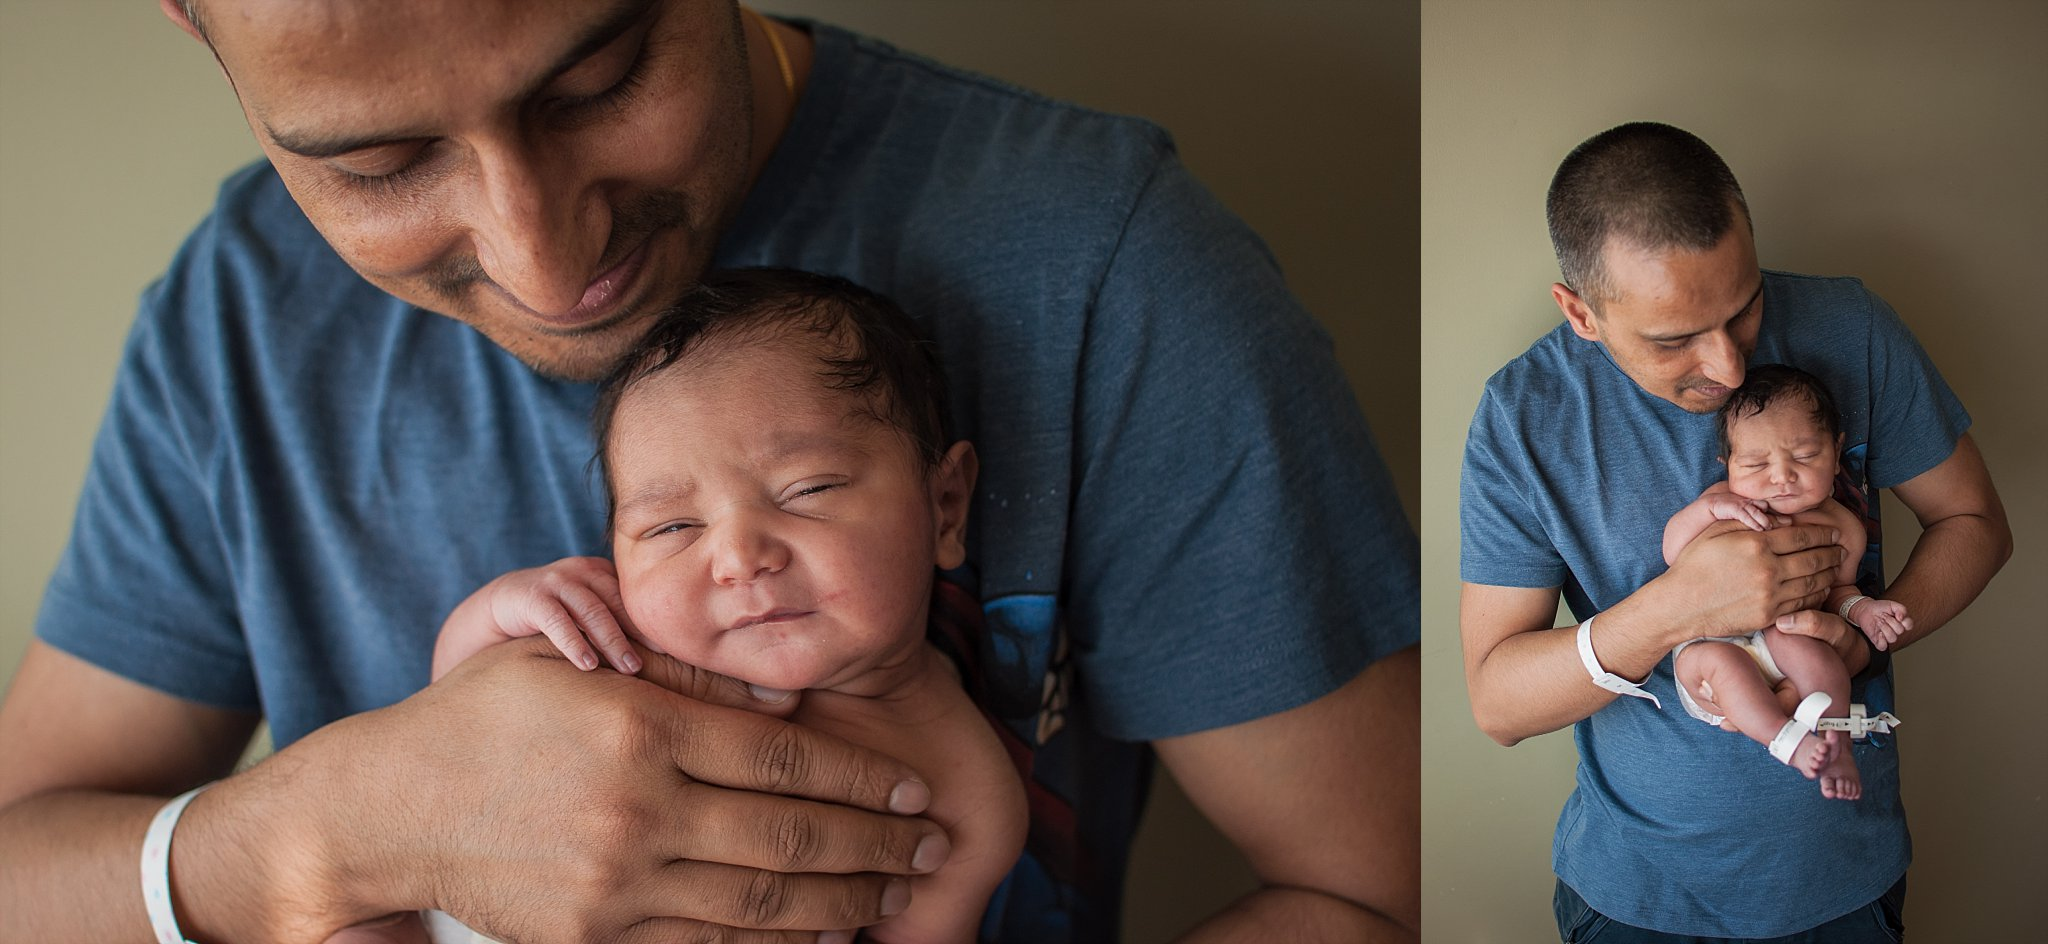 New father holds baby son for fresh 48 newborn photograph.